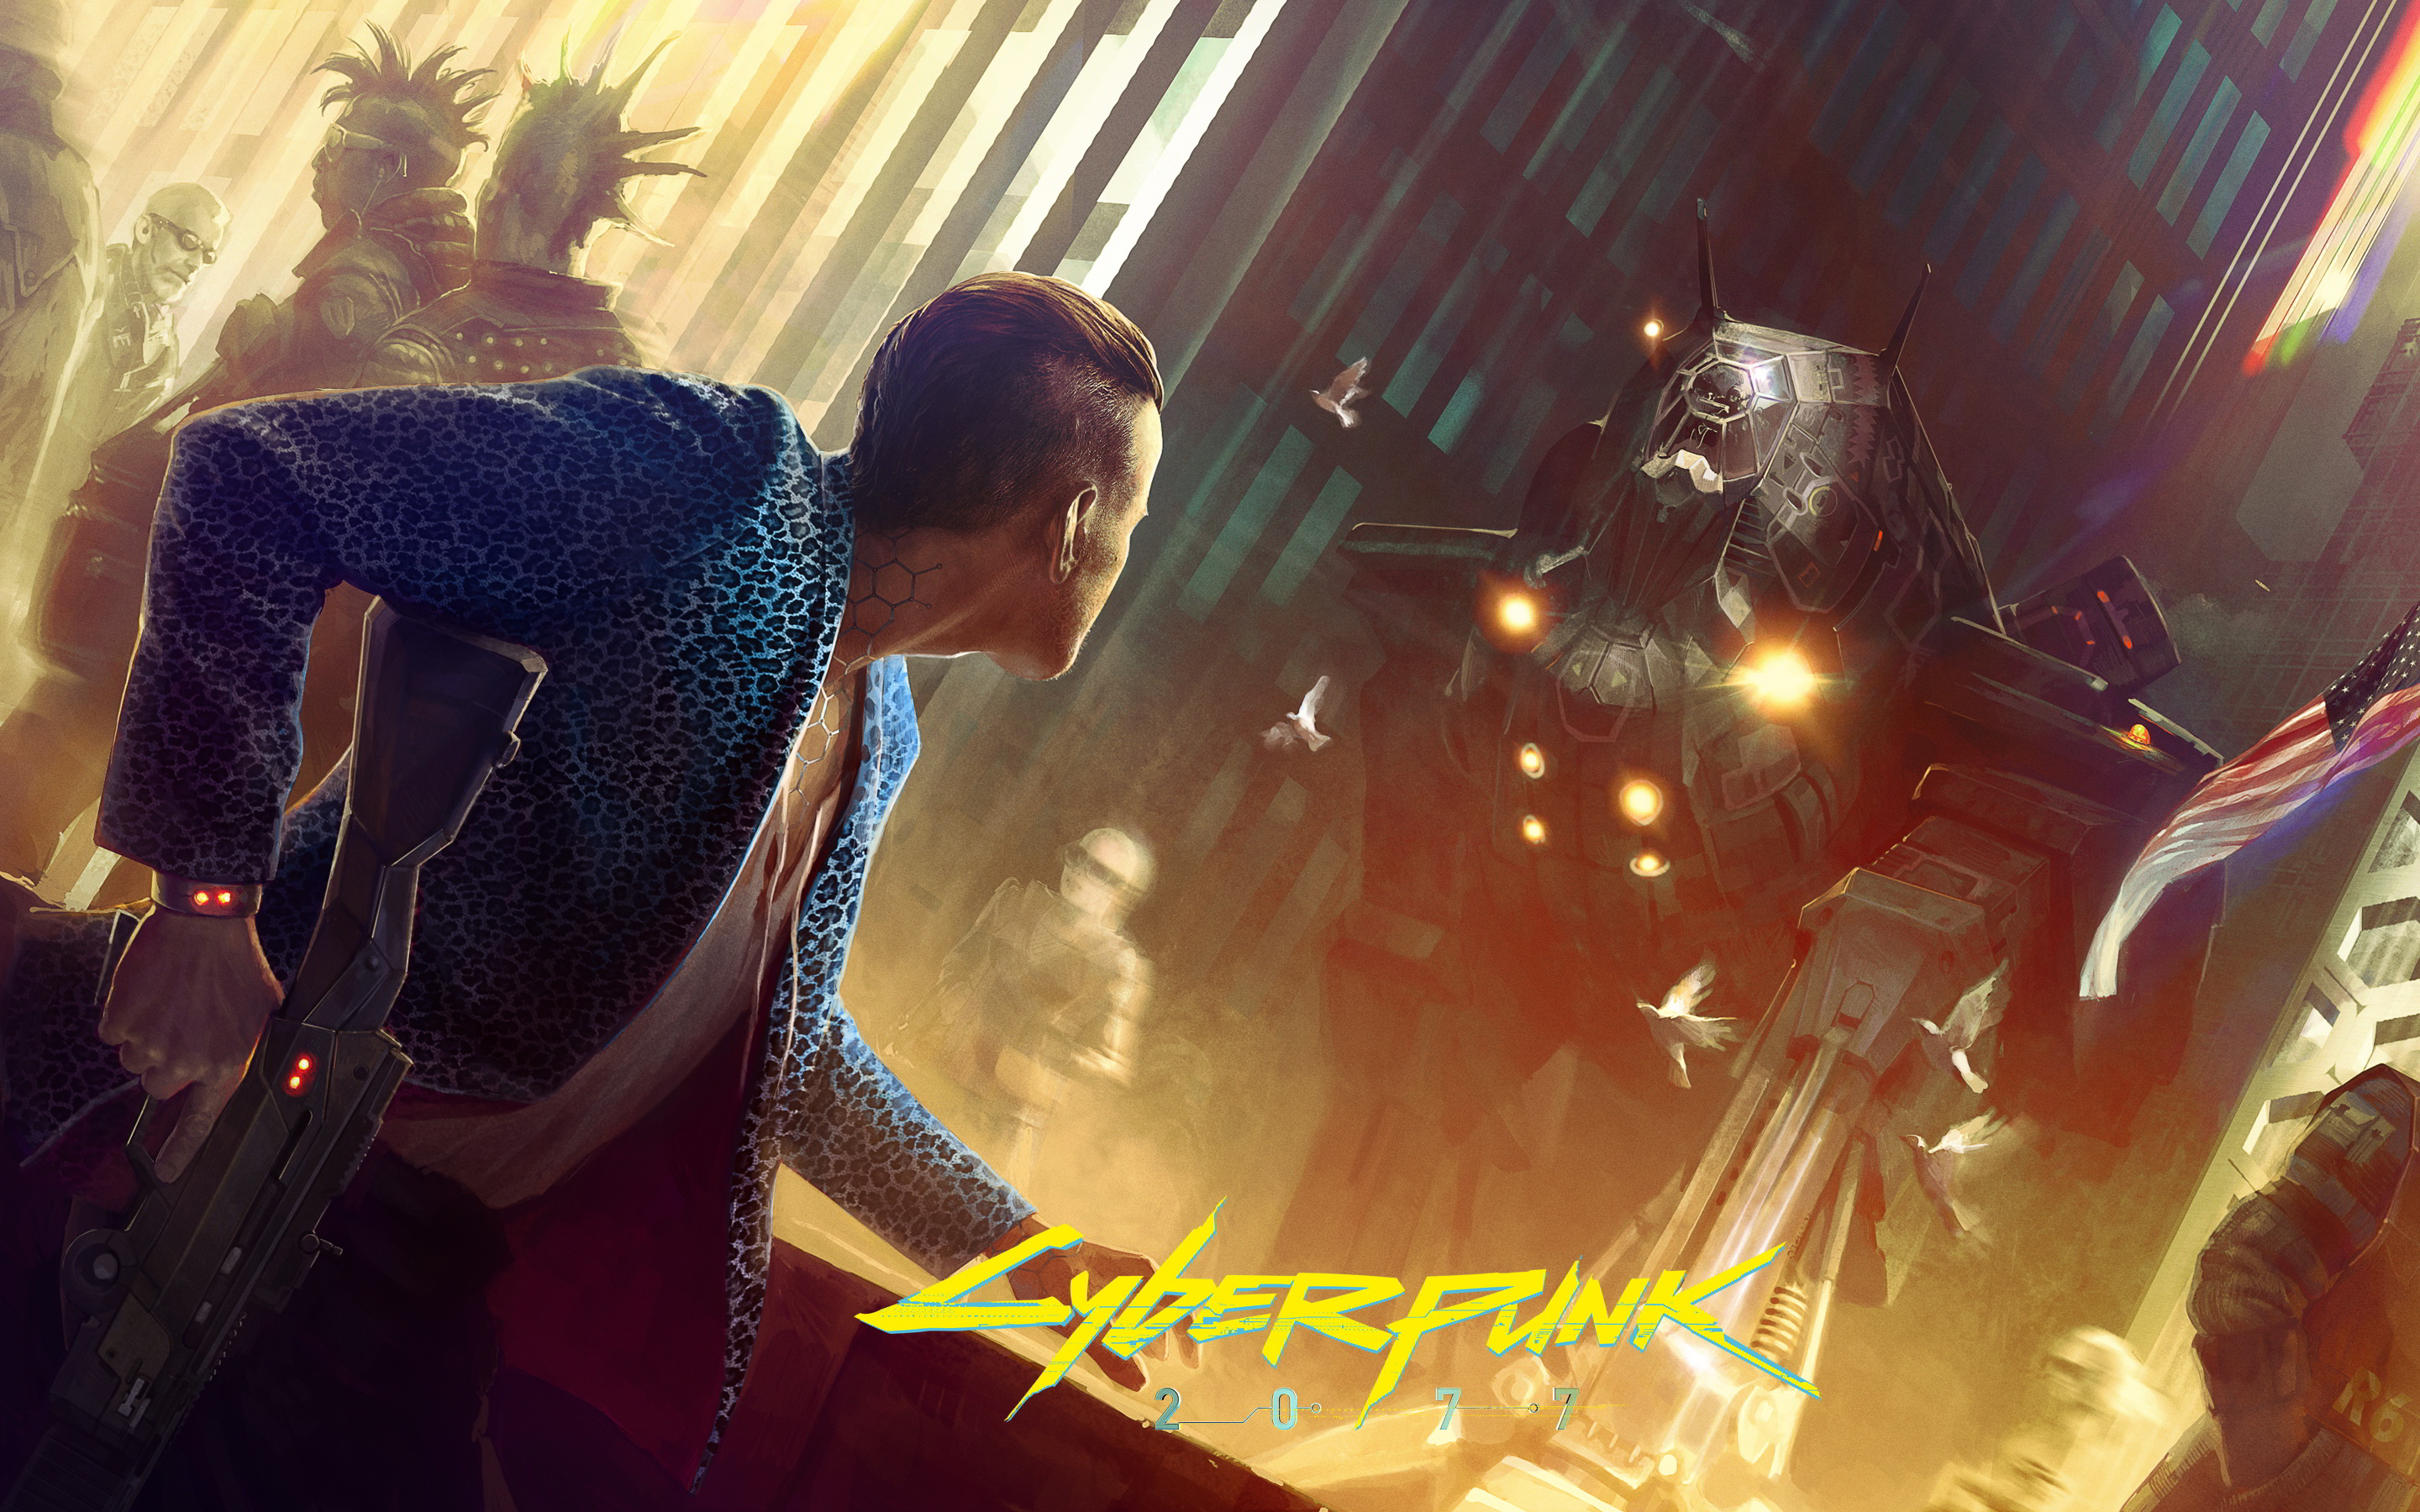 2560x1440 cyberpunk 2077 game 1440p resolution hd 4k